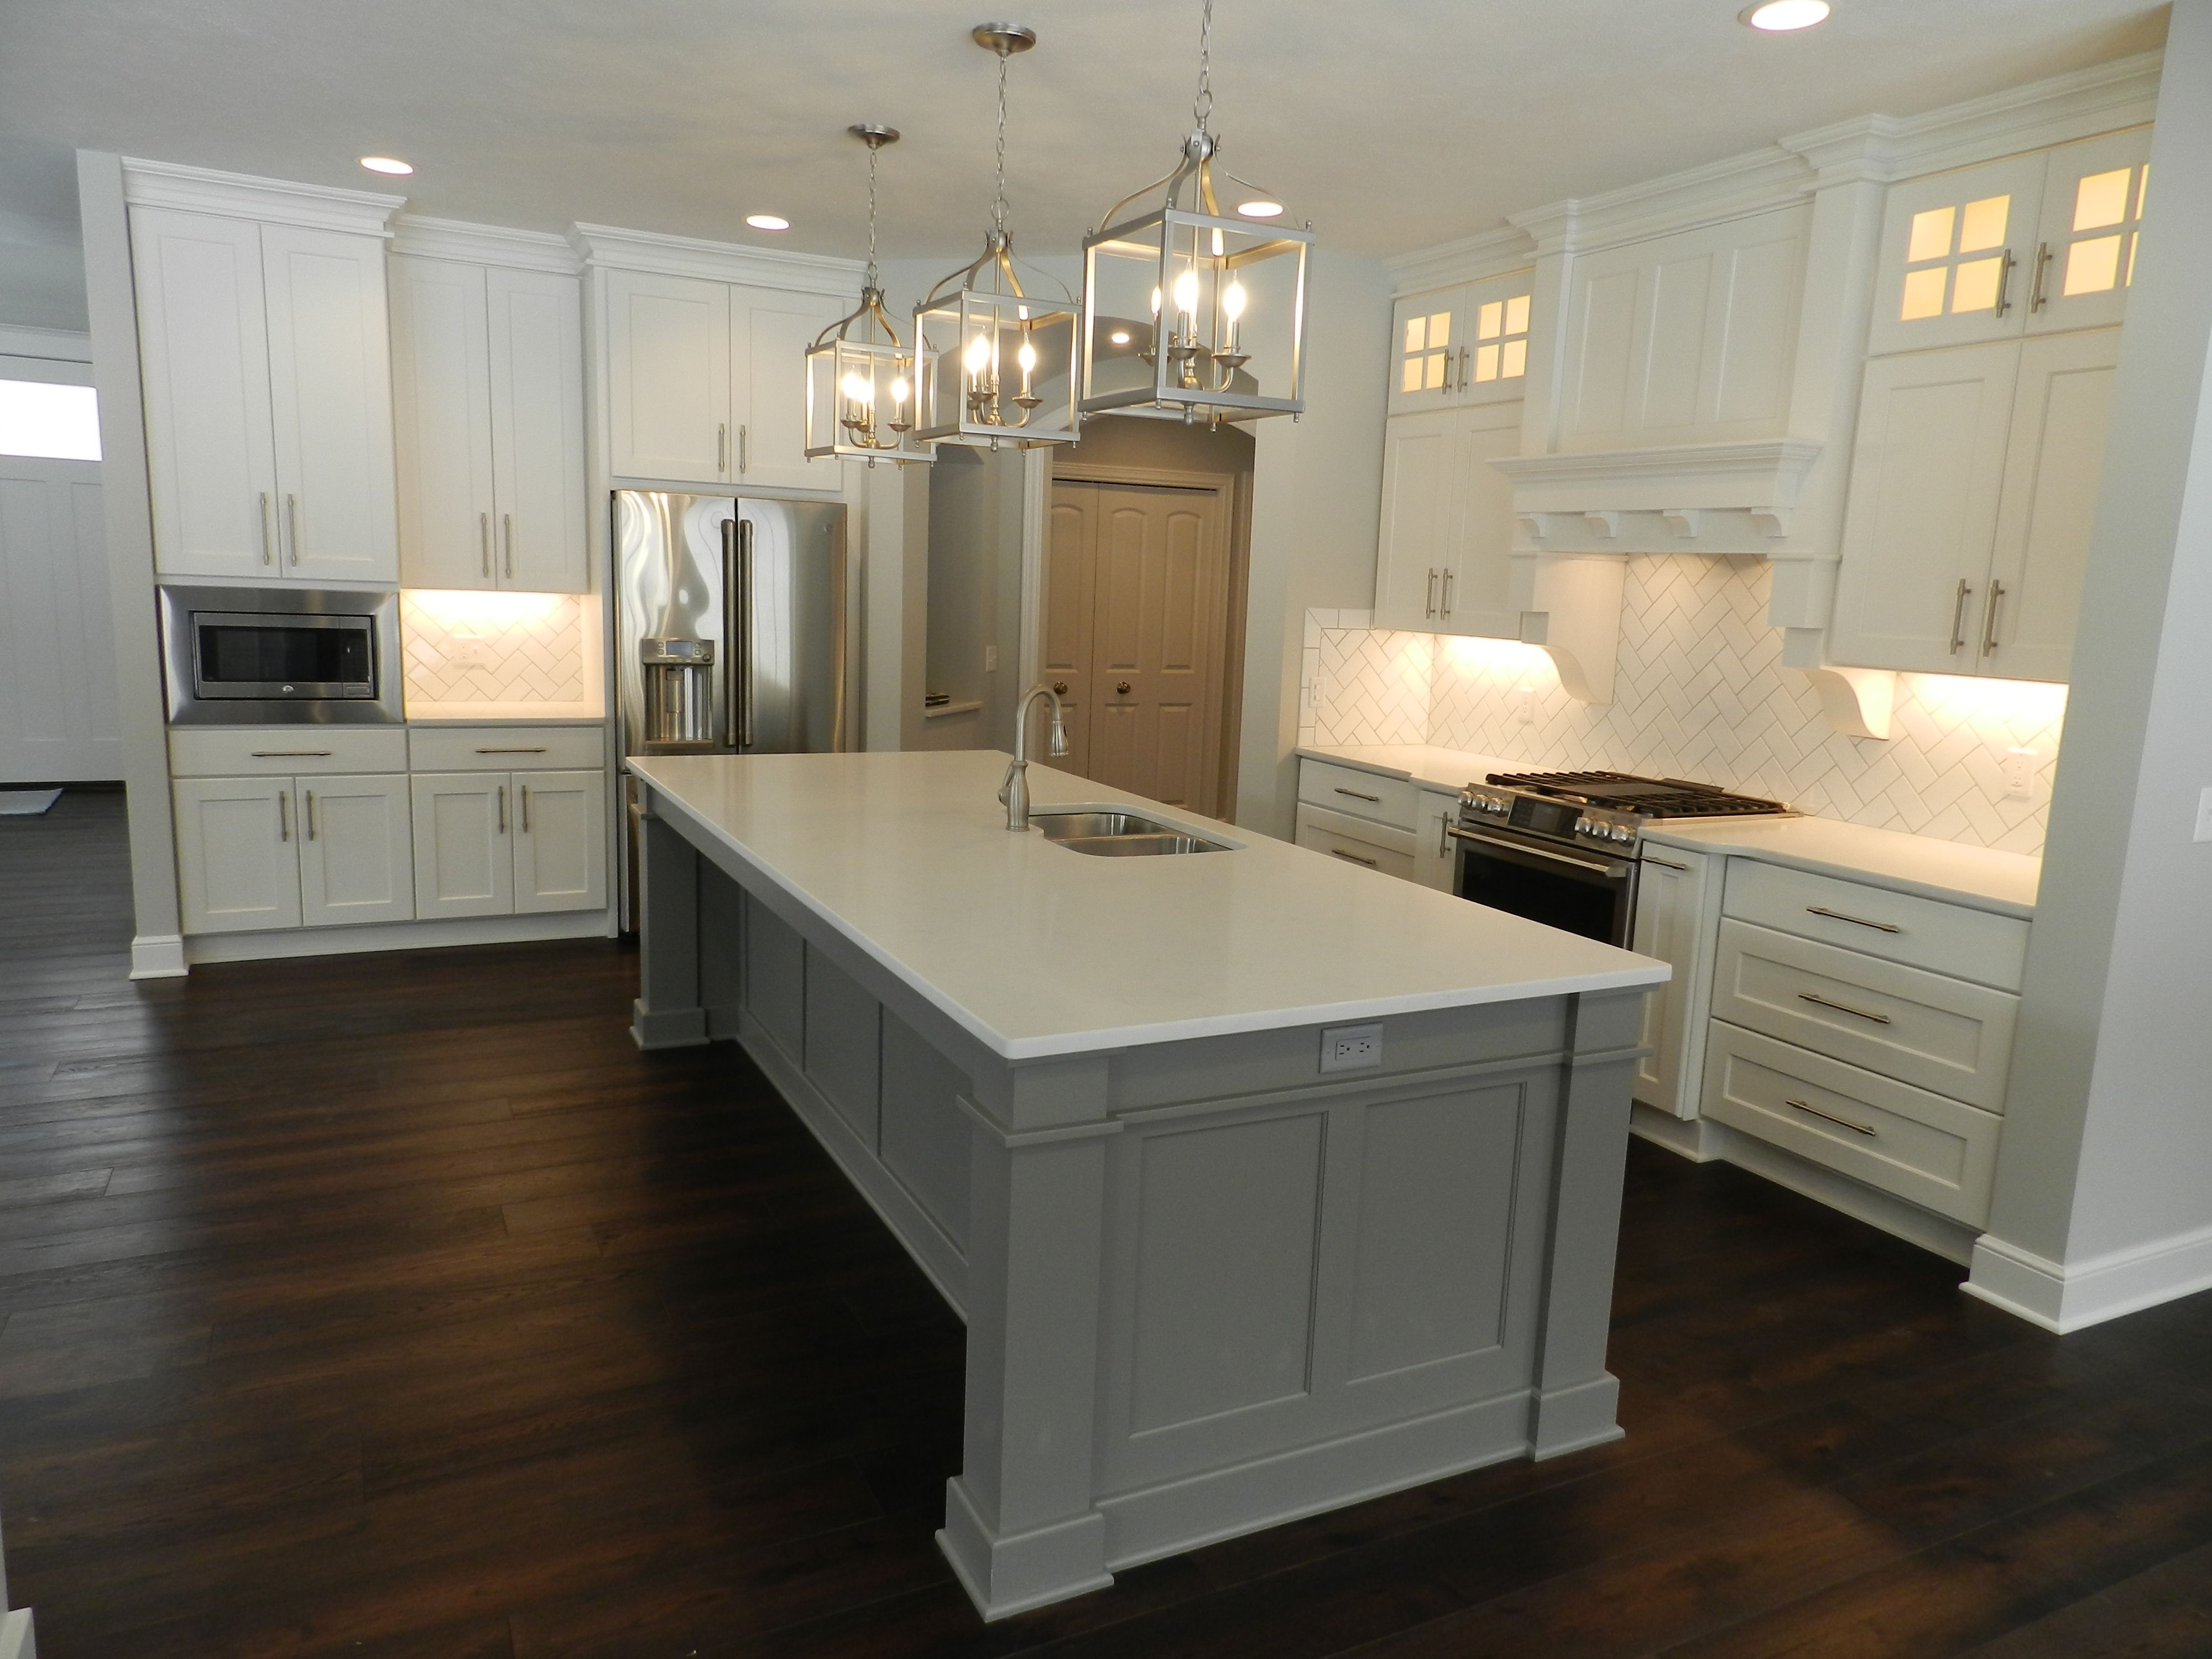 Kitchen featured in the Austin C2 By Classic Homes in Akron, OH